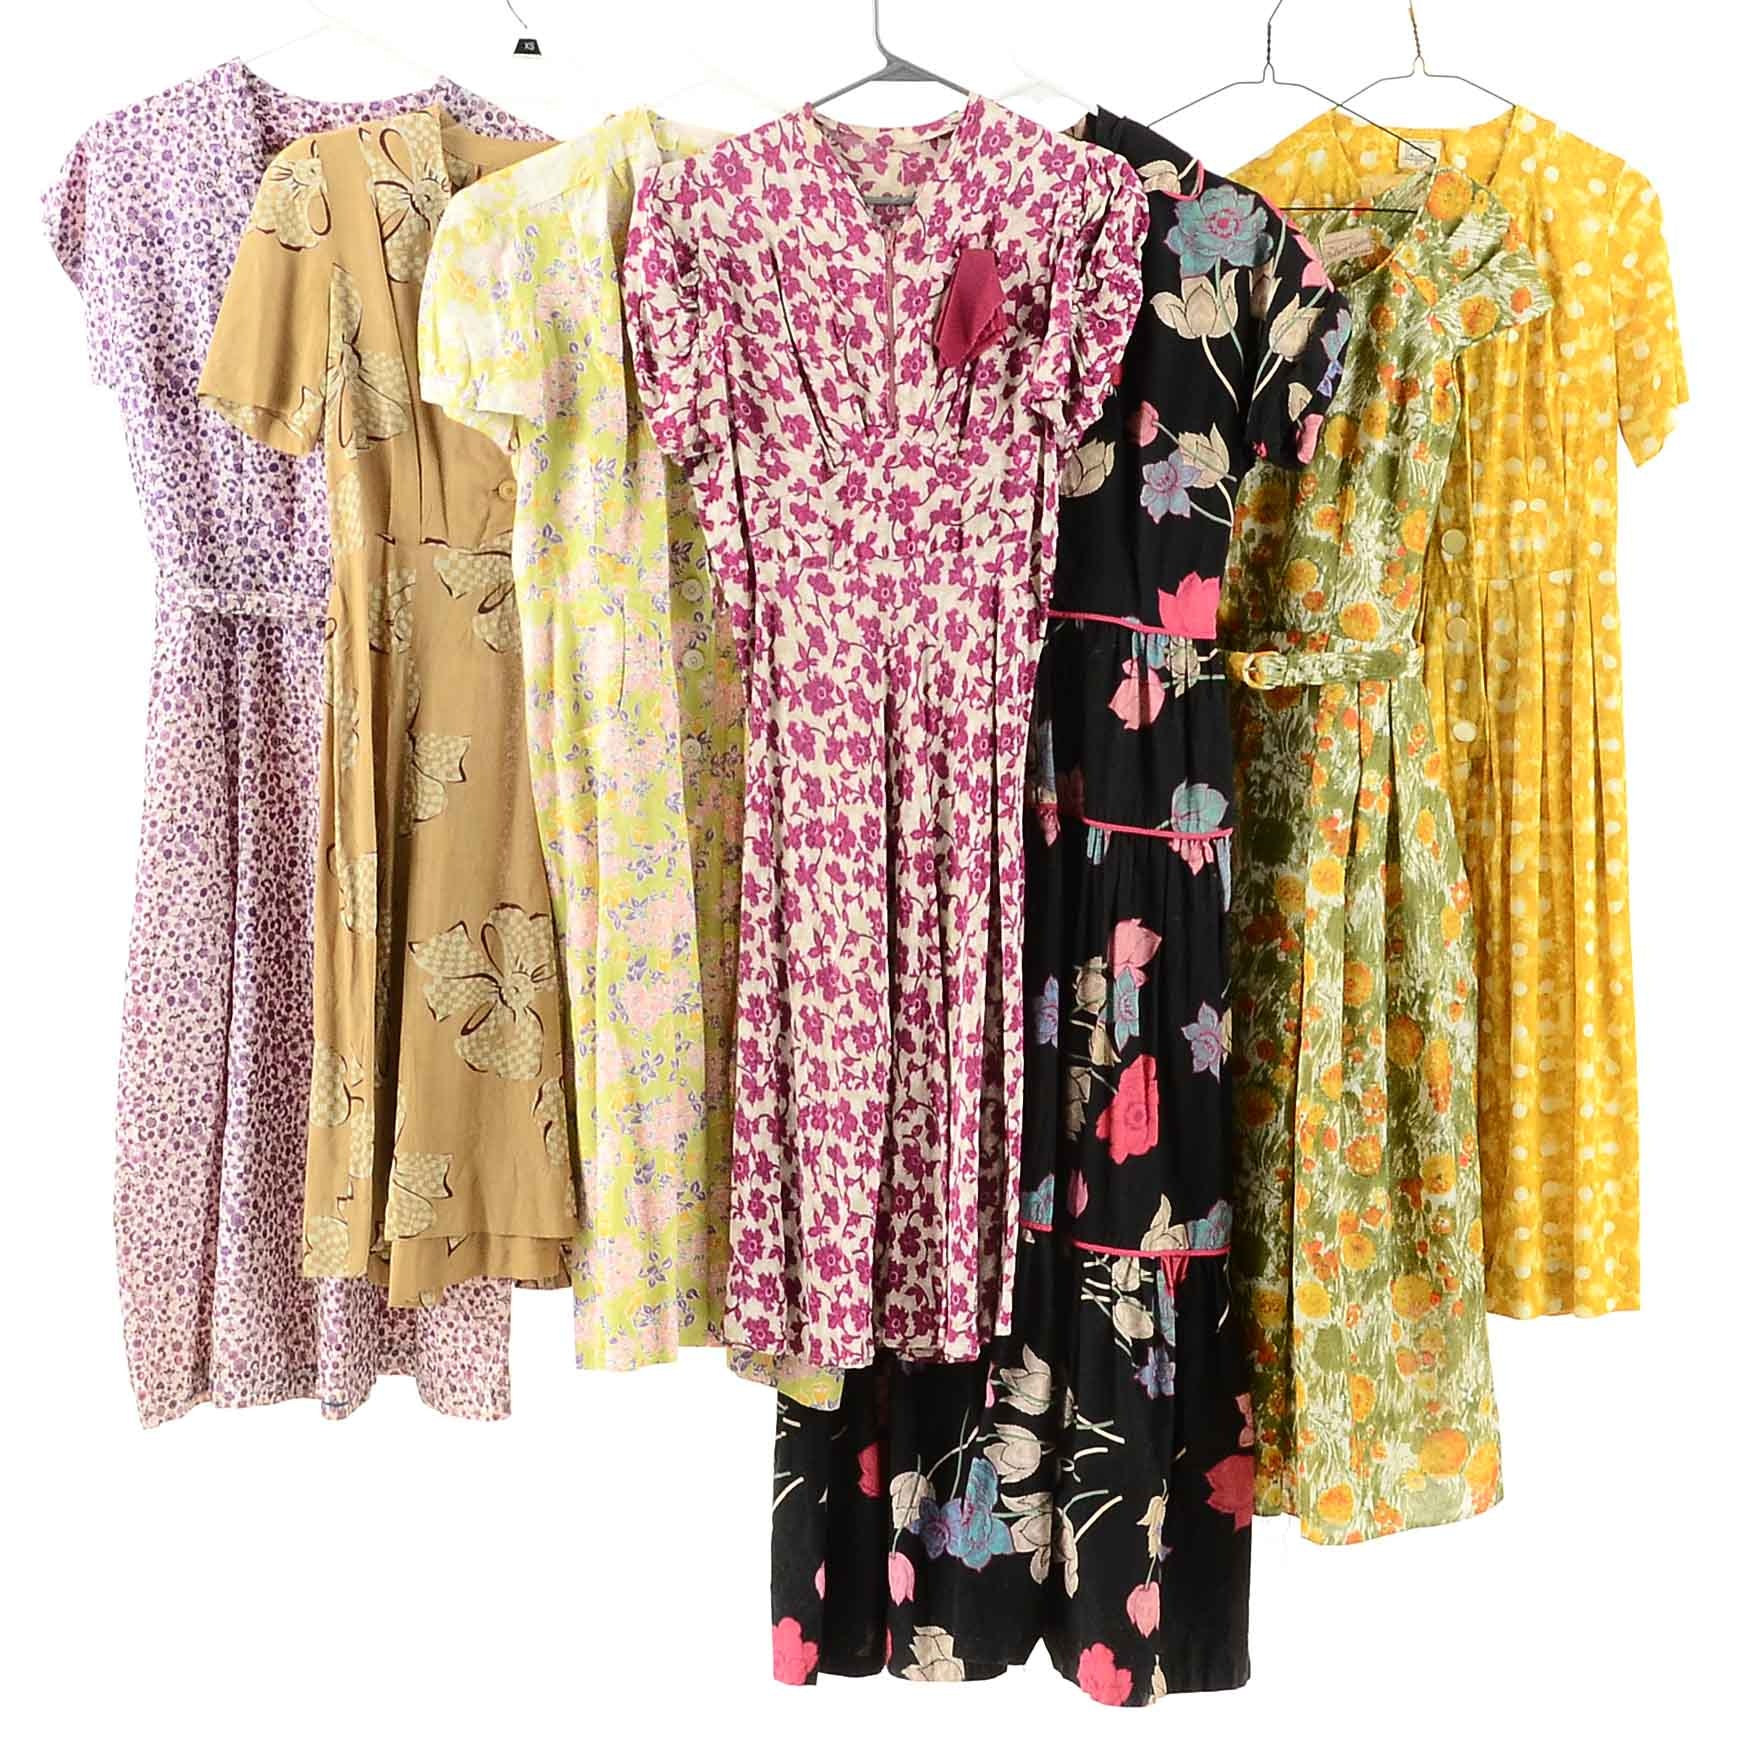 Collection of 1950's Day Dresses